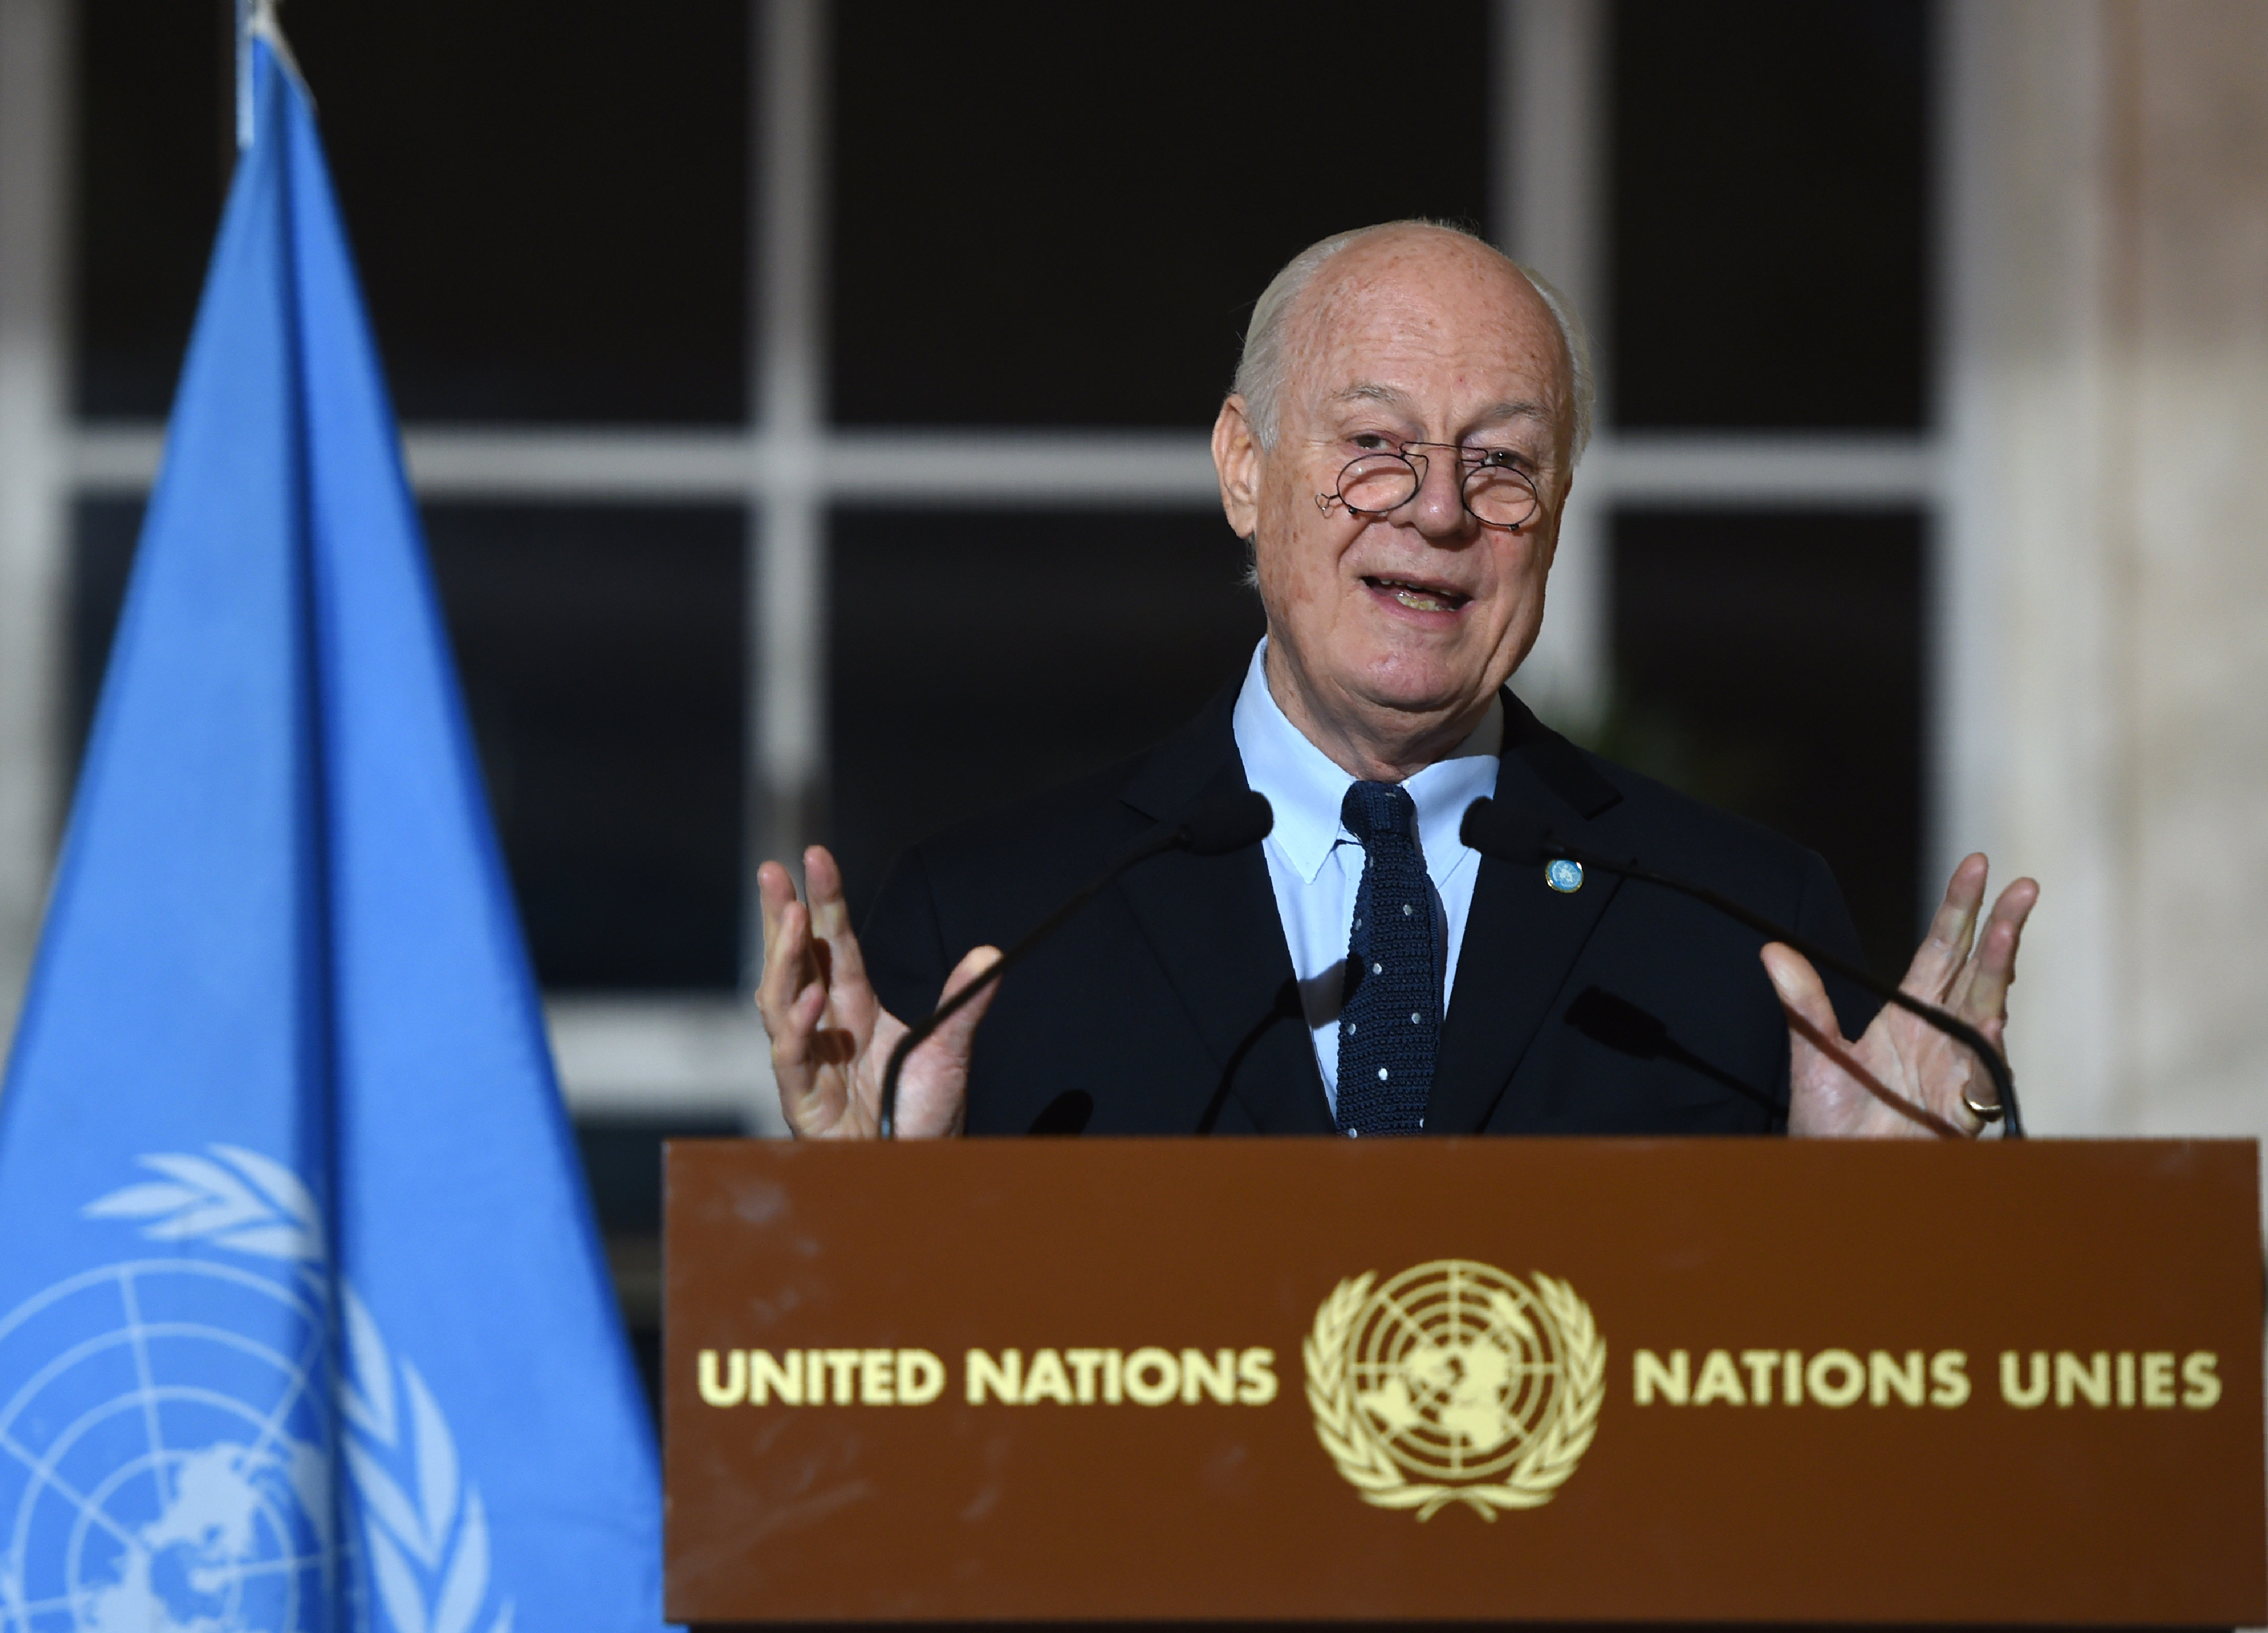 United Nations Syria envoy Staffan de Mistura speaks during a press conference in Geneva on March 15, 2016, on the second round of Syrian peace talks at the UN headquarters